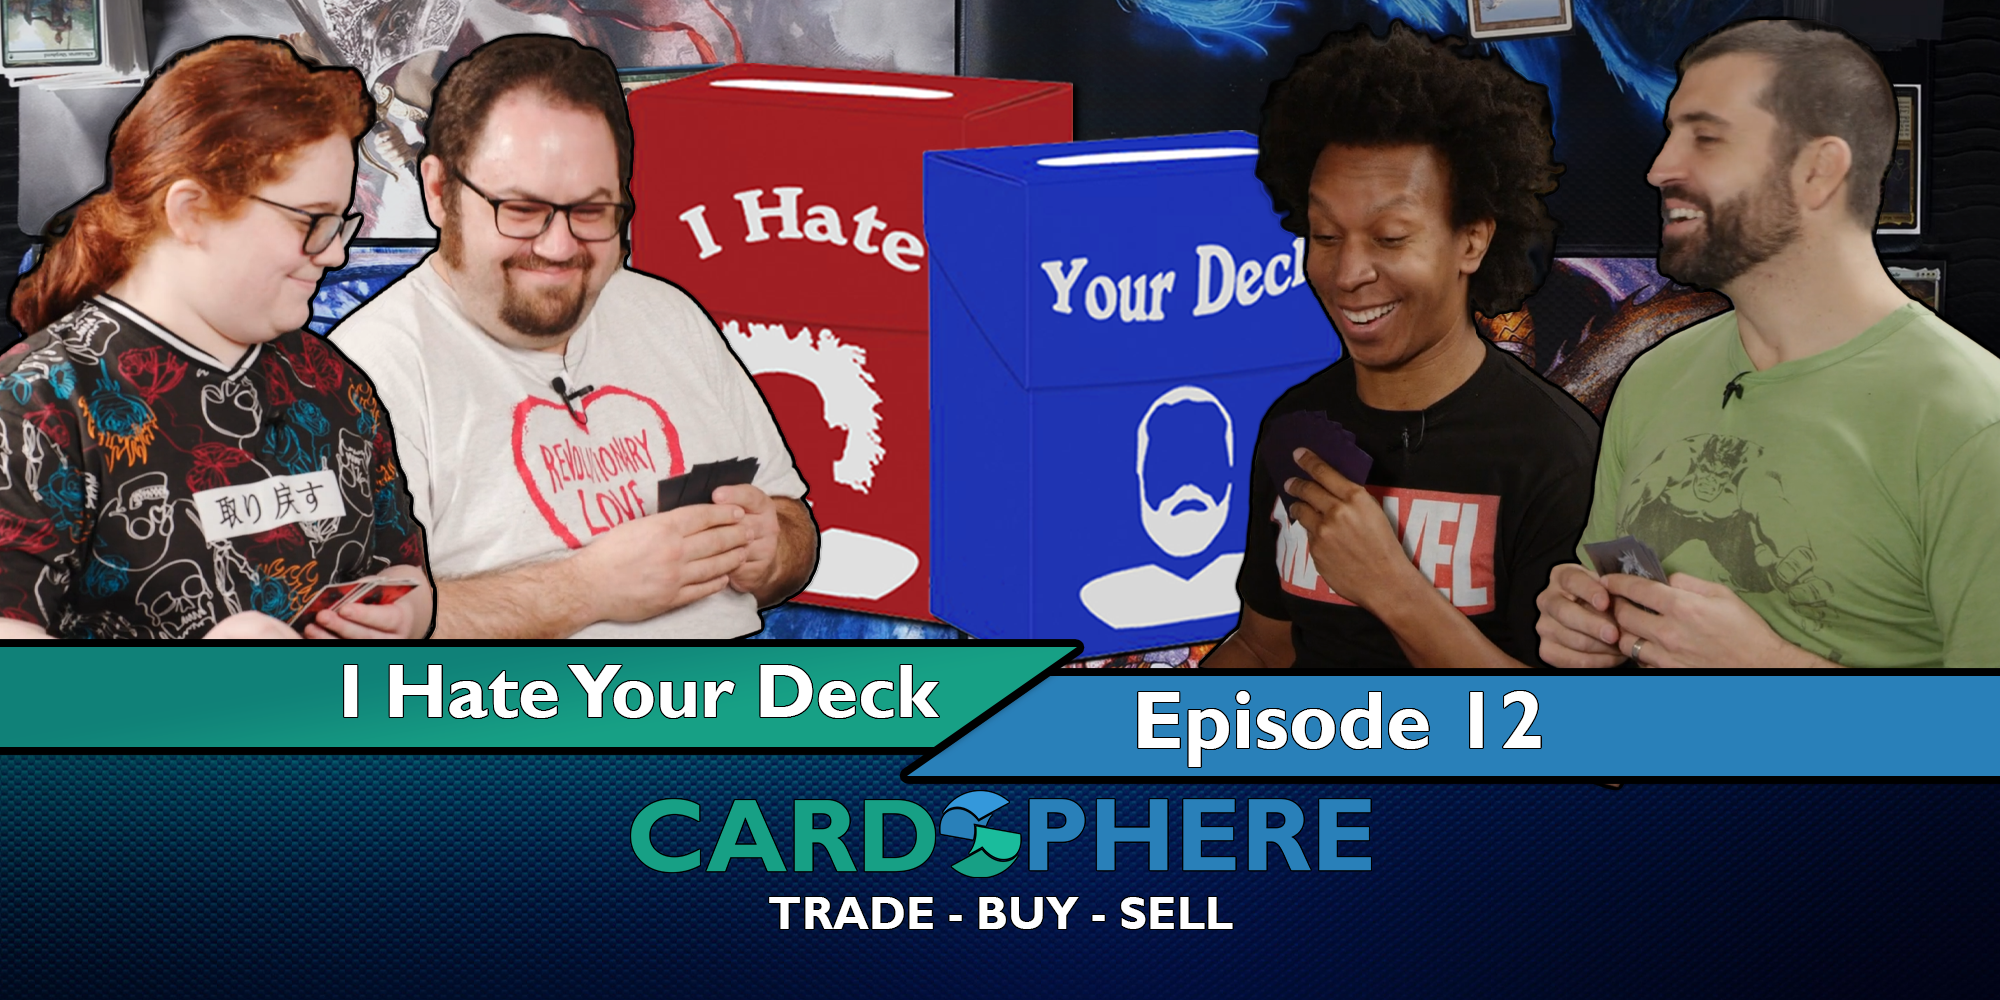 I Hate Your Deck Episode 12